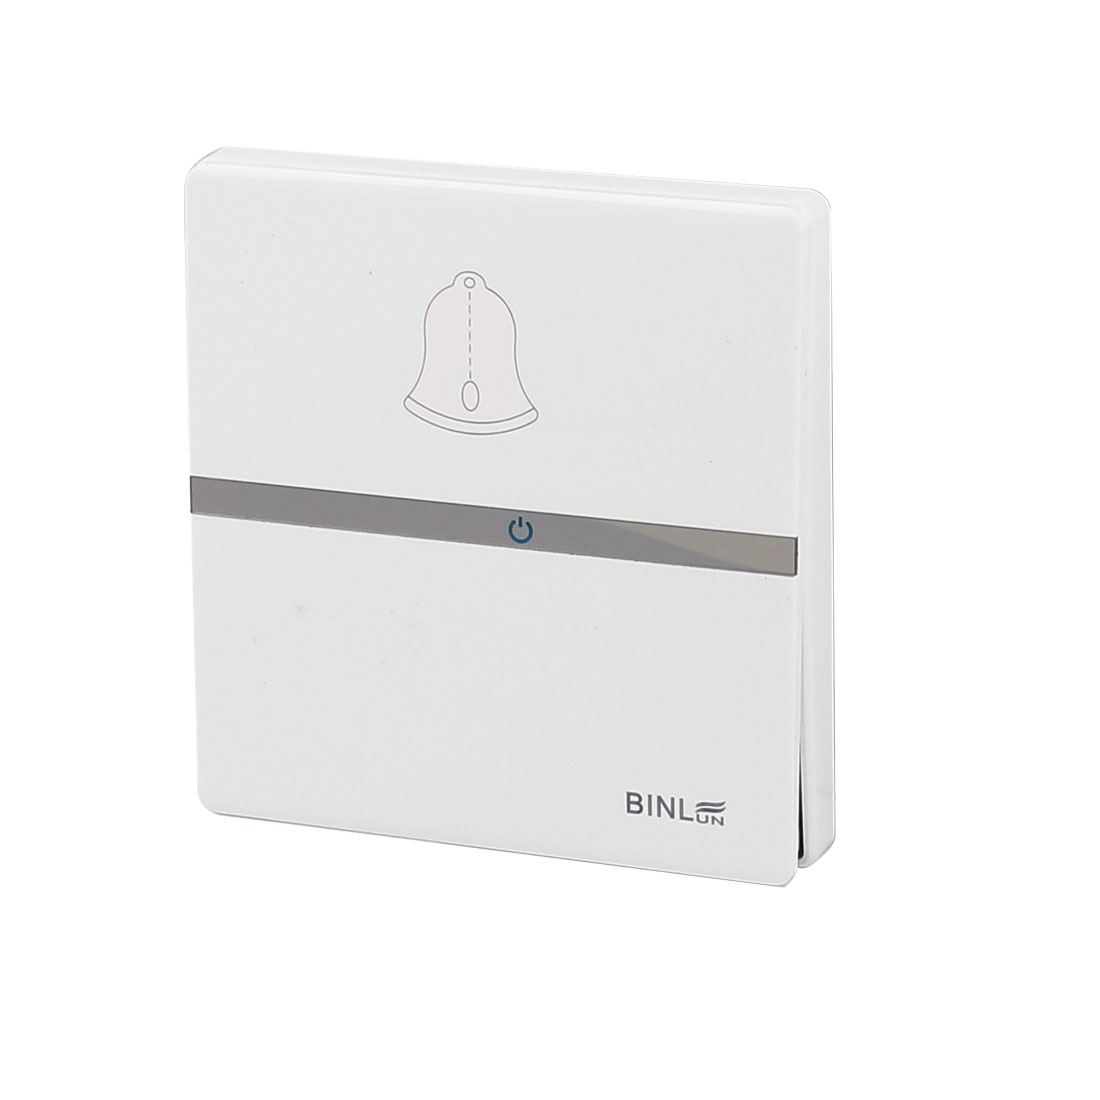 AC 220V 10A White Square Press Button Release Wall Mounted Doorbell Switch Plate